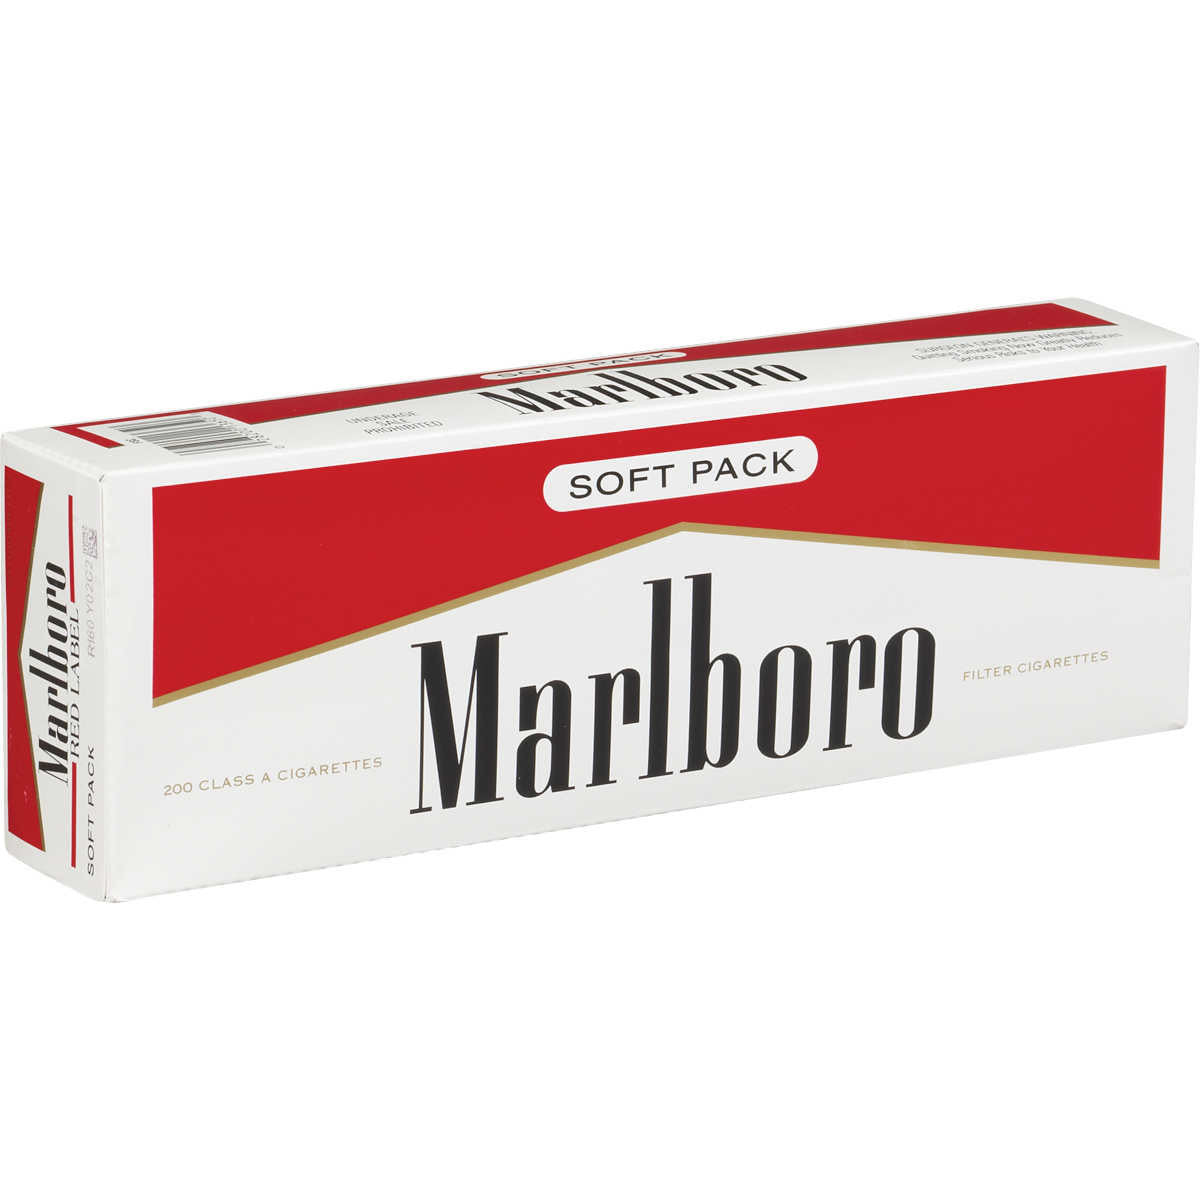 Carton of Marlboro lights costco